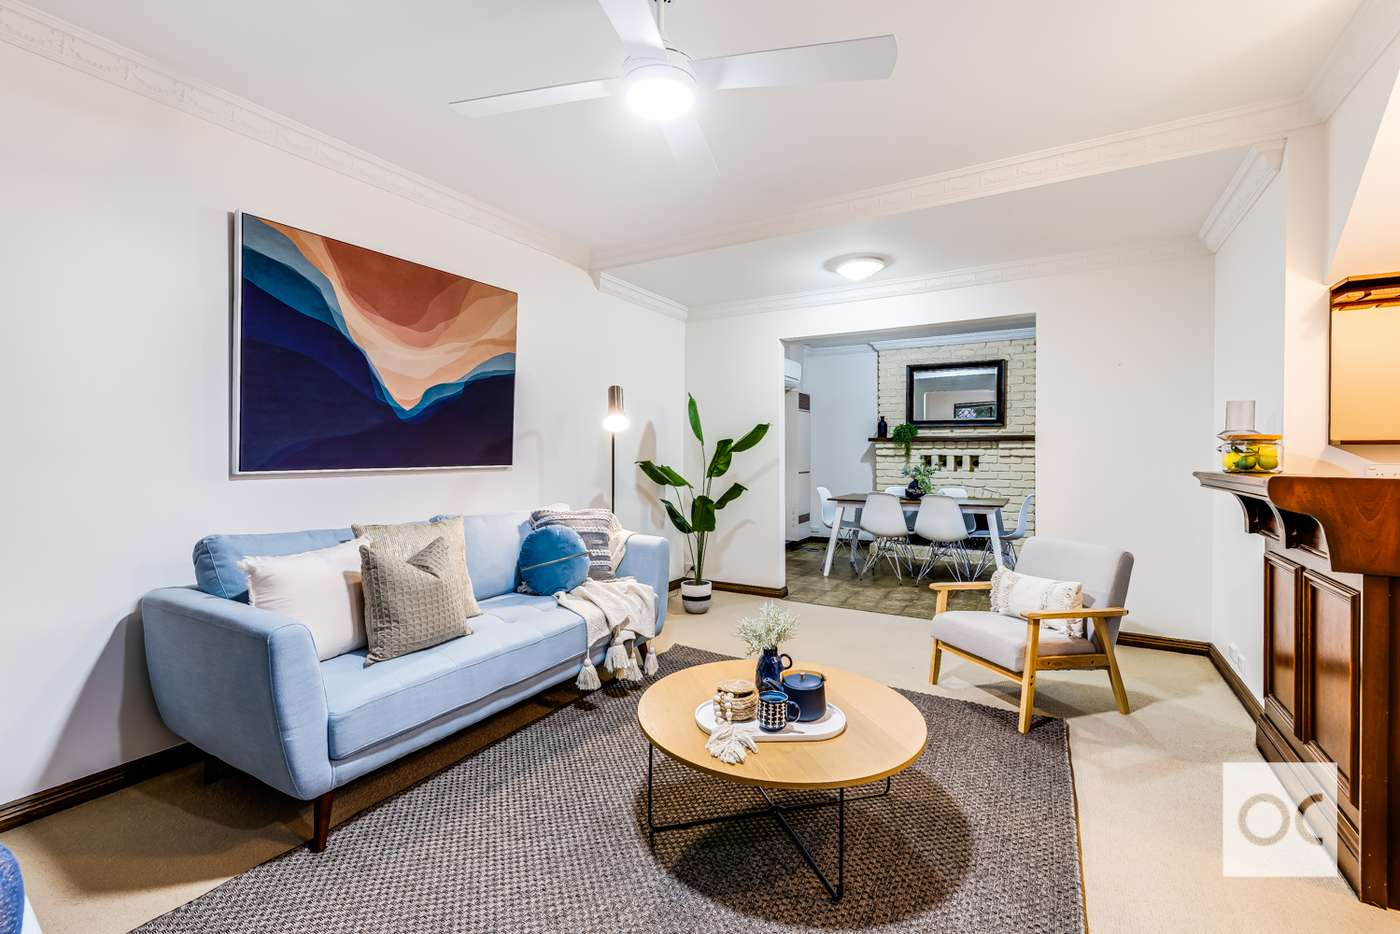 Sixth view of Homely house listing, 2/9 Mathias Avenue, Cumberland Park SA 5041